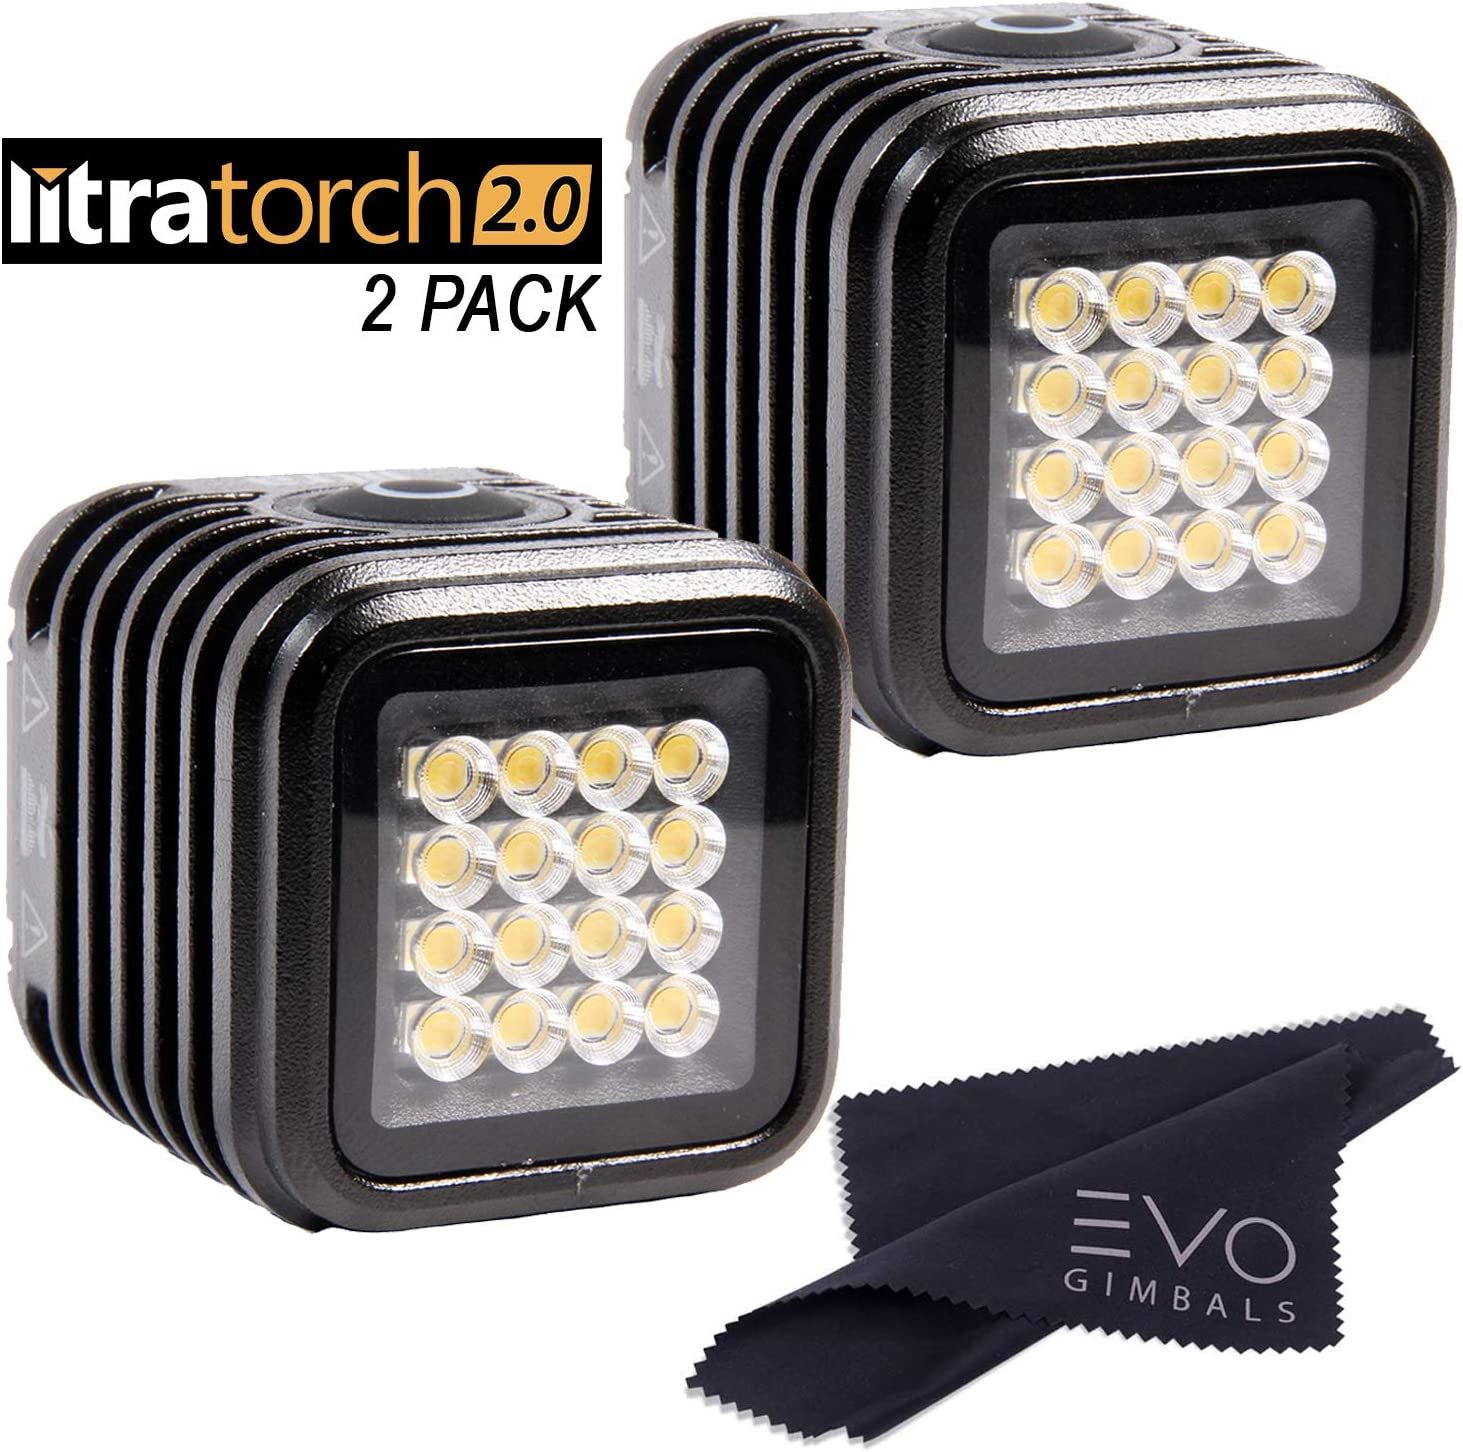 Litra LitraTorch 2.0 Bundle with 2 Litra Torch Lights & Cleaning Cloth (3 Items) - Military Grade Adventure Light for Photos and Videos, Waterproof up to 20M